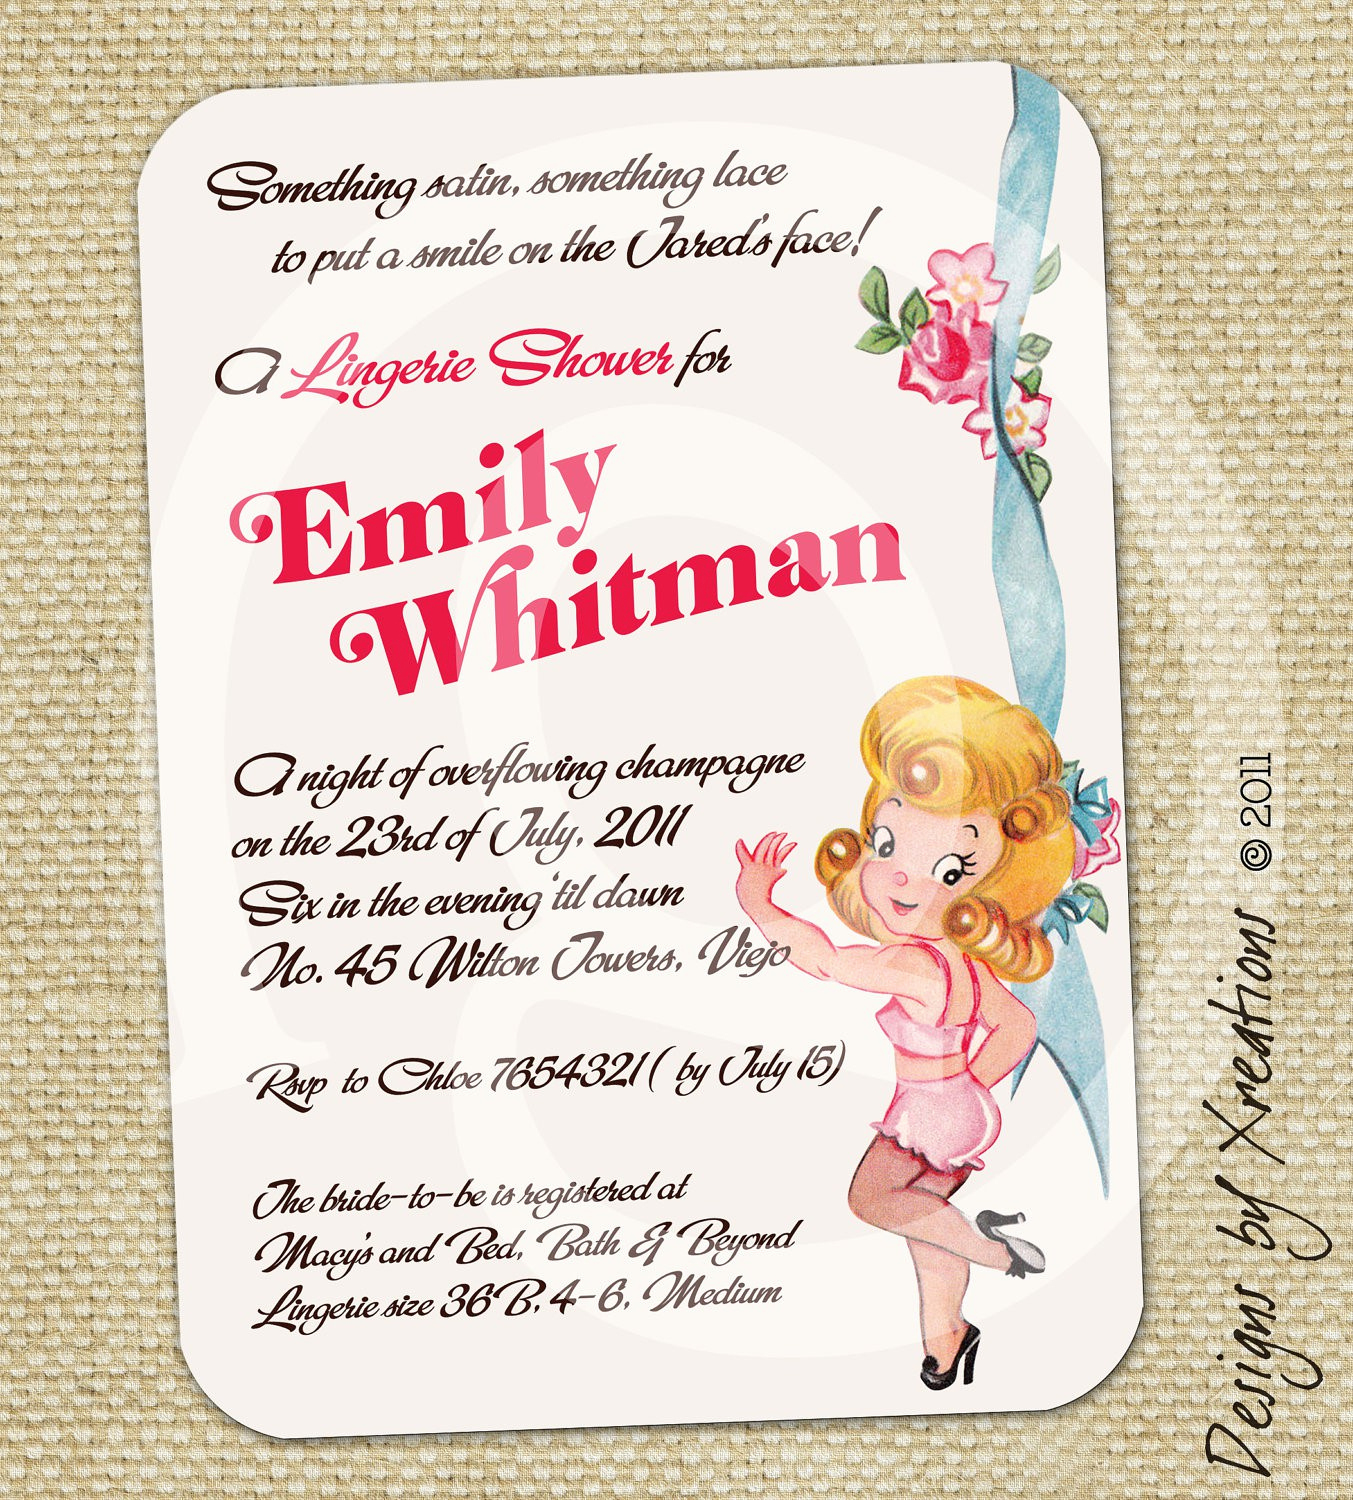 Card Shower Invitation Wording Lovely Baby Shower Invitation Wording asking for Money • Baby